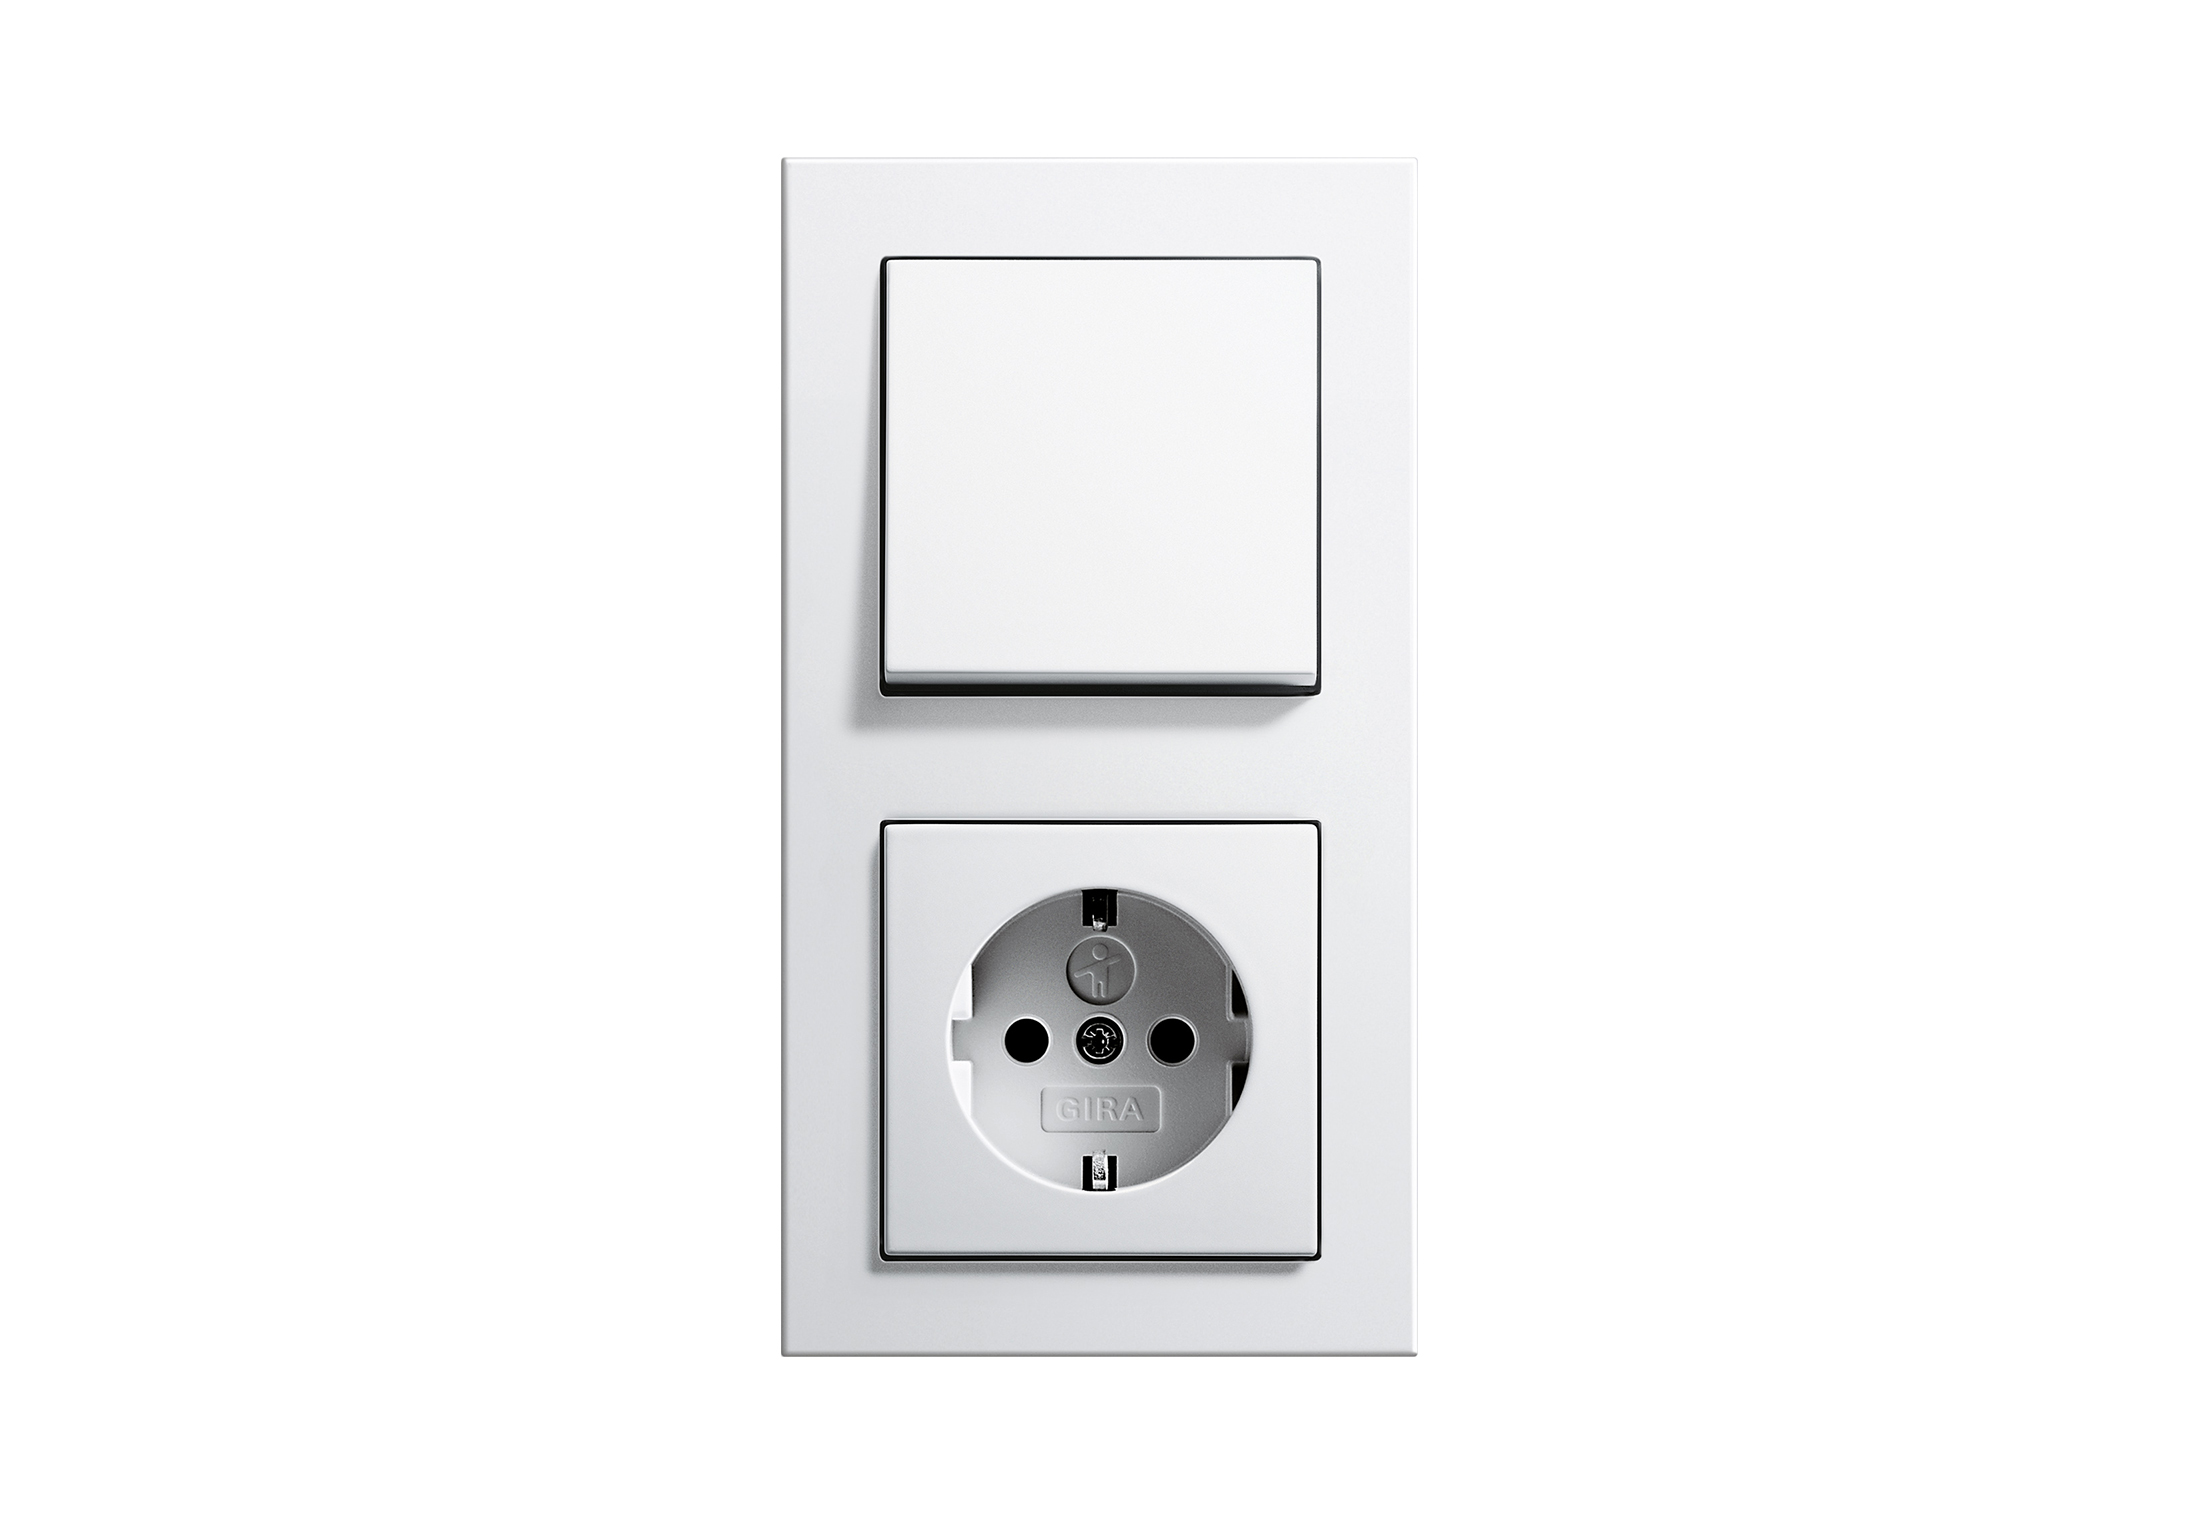 Design features of outlets and switches Gira (Gira) 75